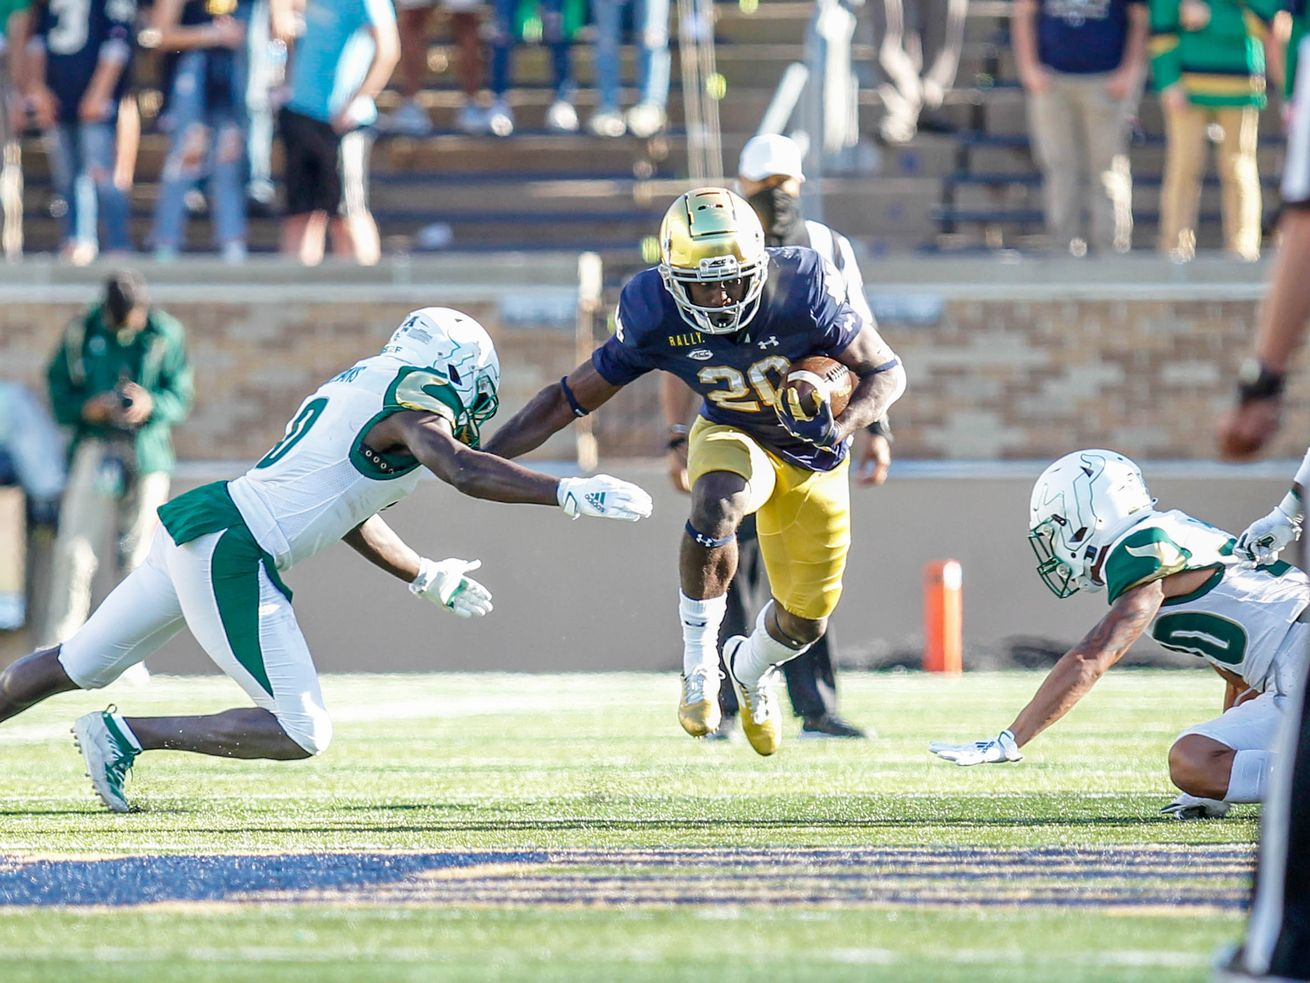 Notre Dame breezes to a 52-0 romp against South Florida